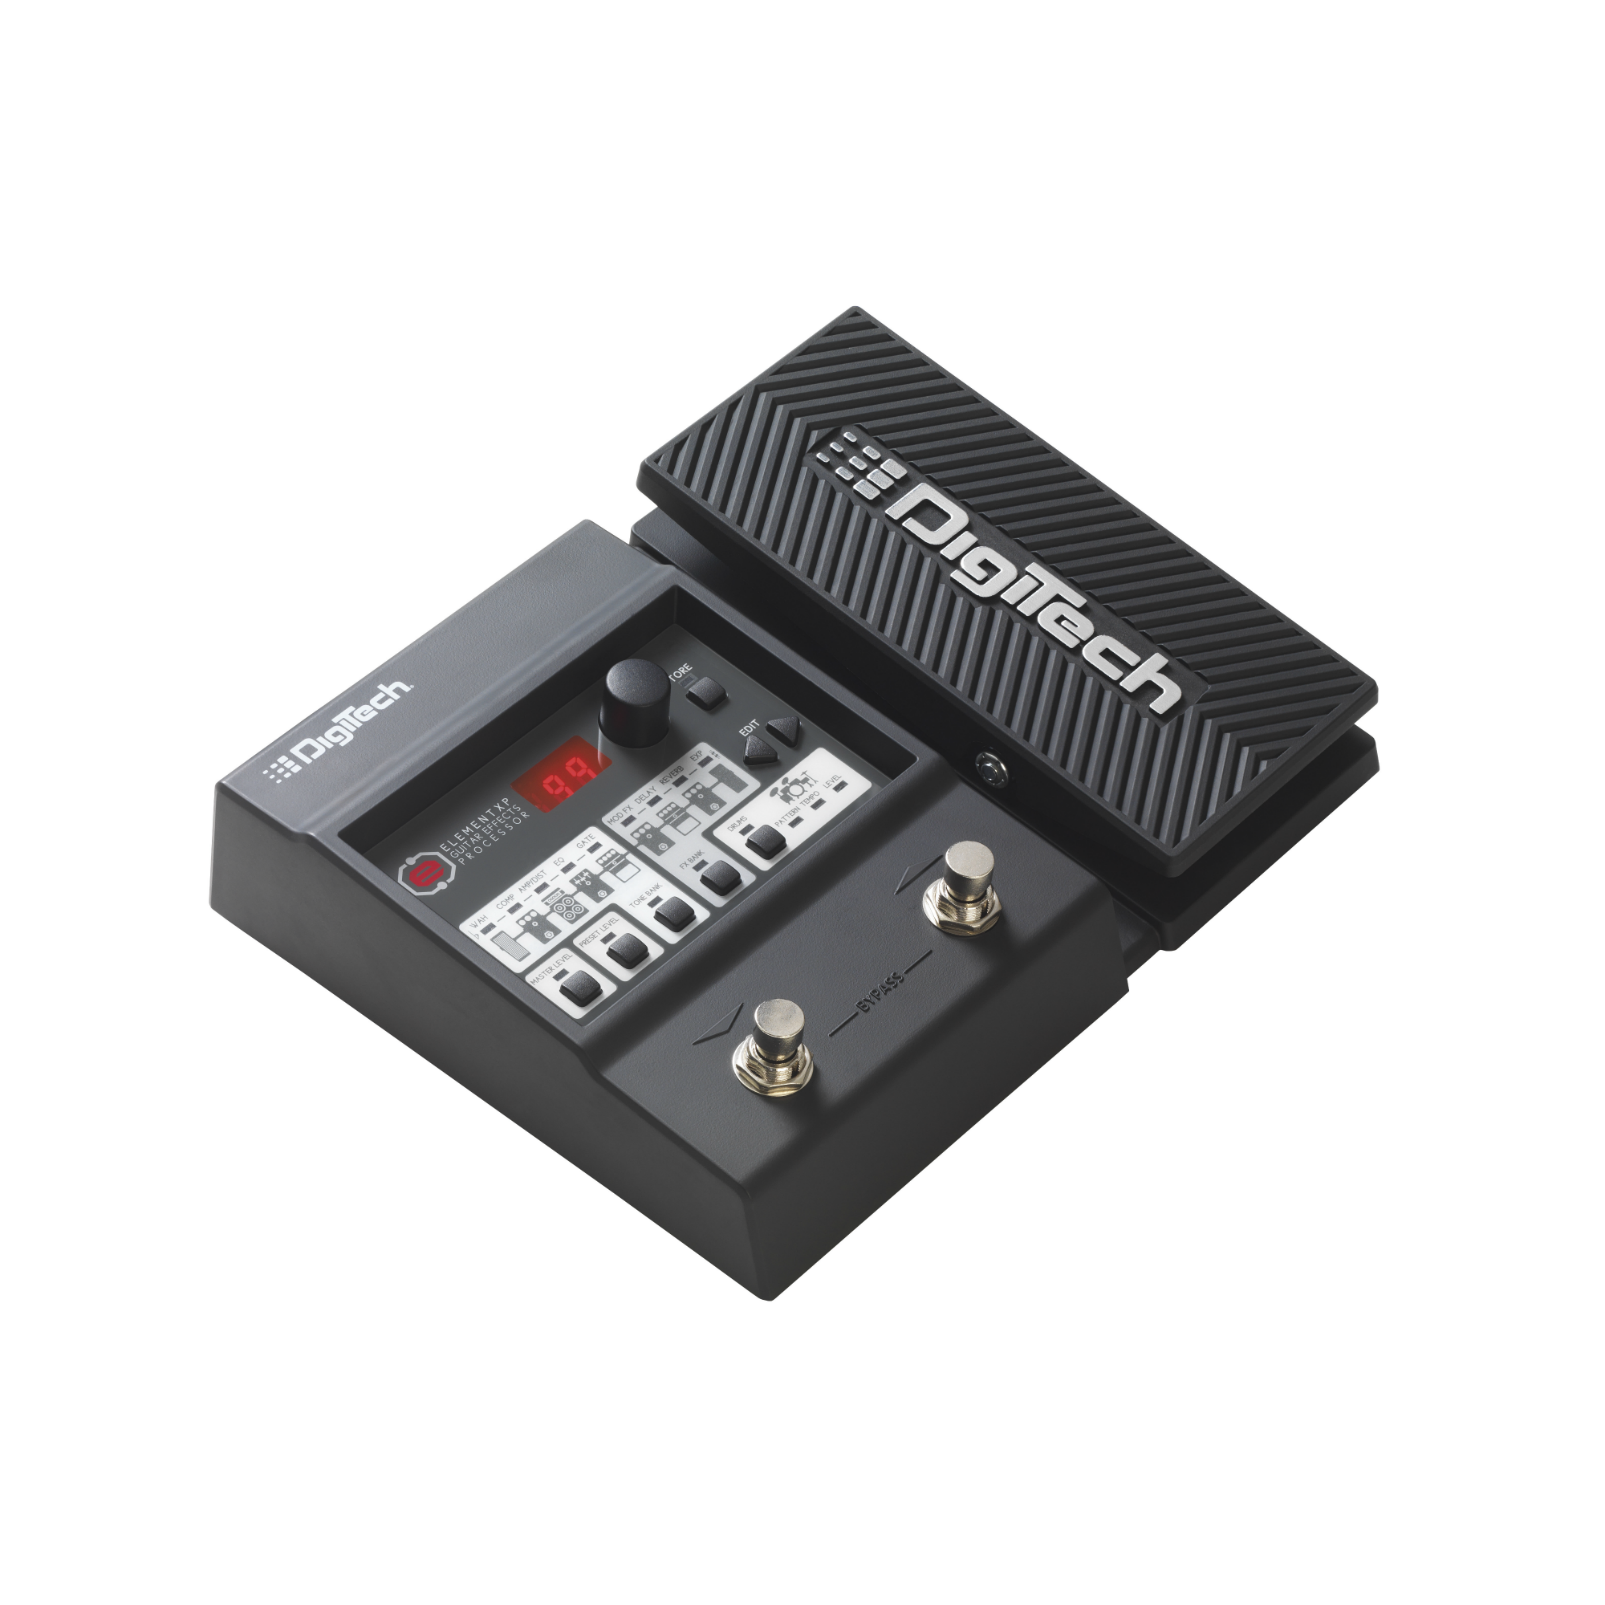 DigiTech Element XP (discontinued) - Black - Guitar Multi-Effects Processor with Expression Pedal - Hero